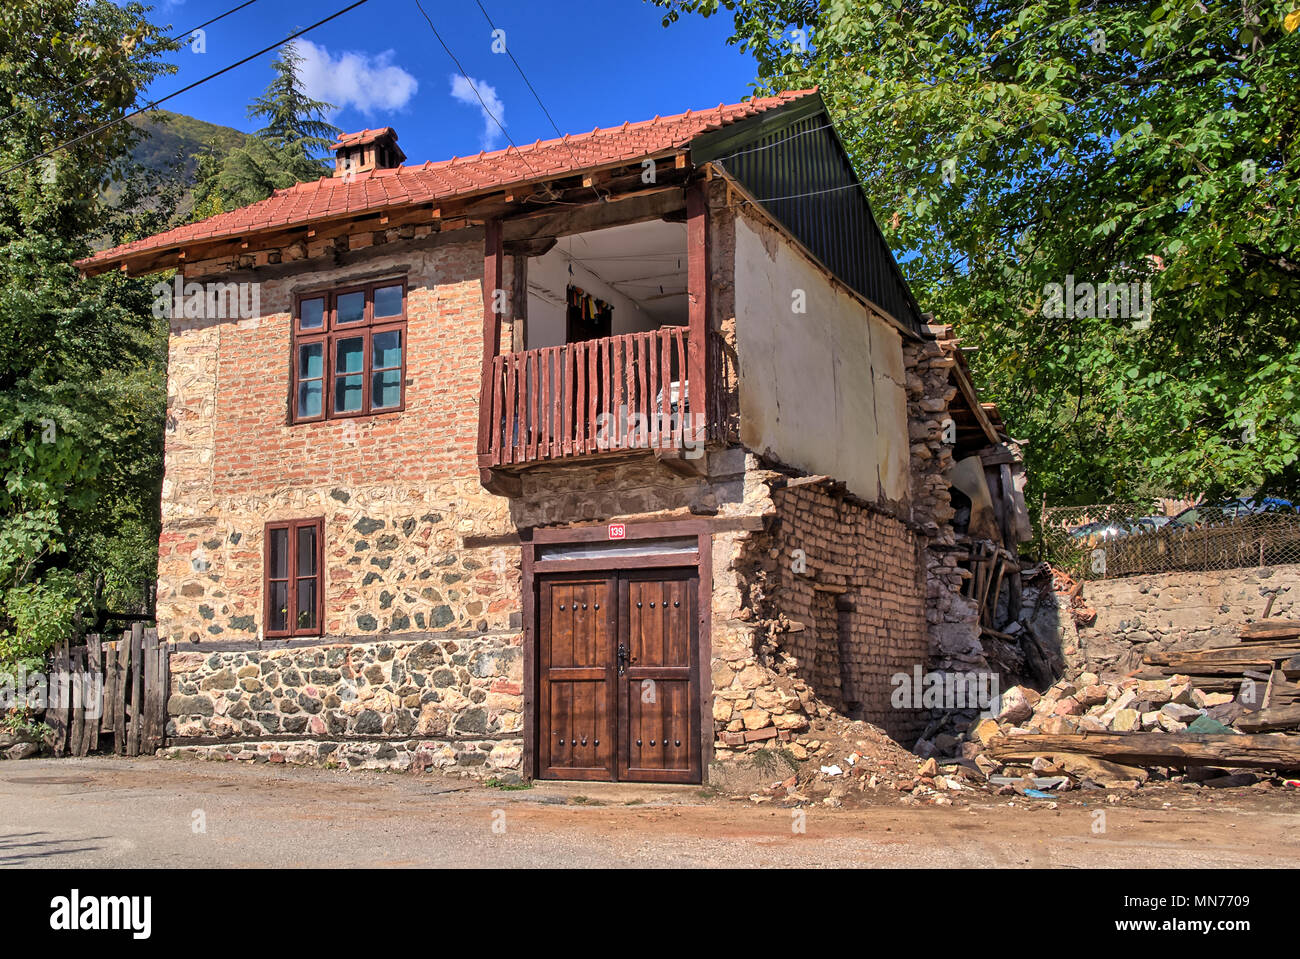 Old Damaged Traditional Stone House Building with Balcony in Republic of Vevčani, FYROM Macedonia, Balkans - Stock Image